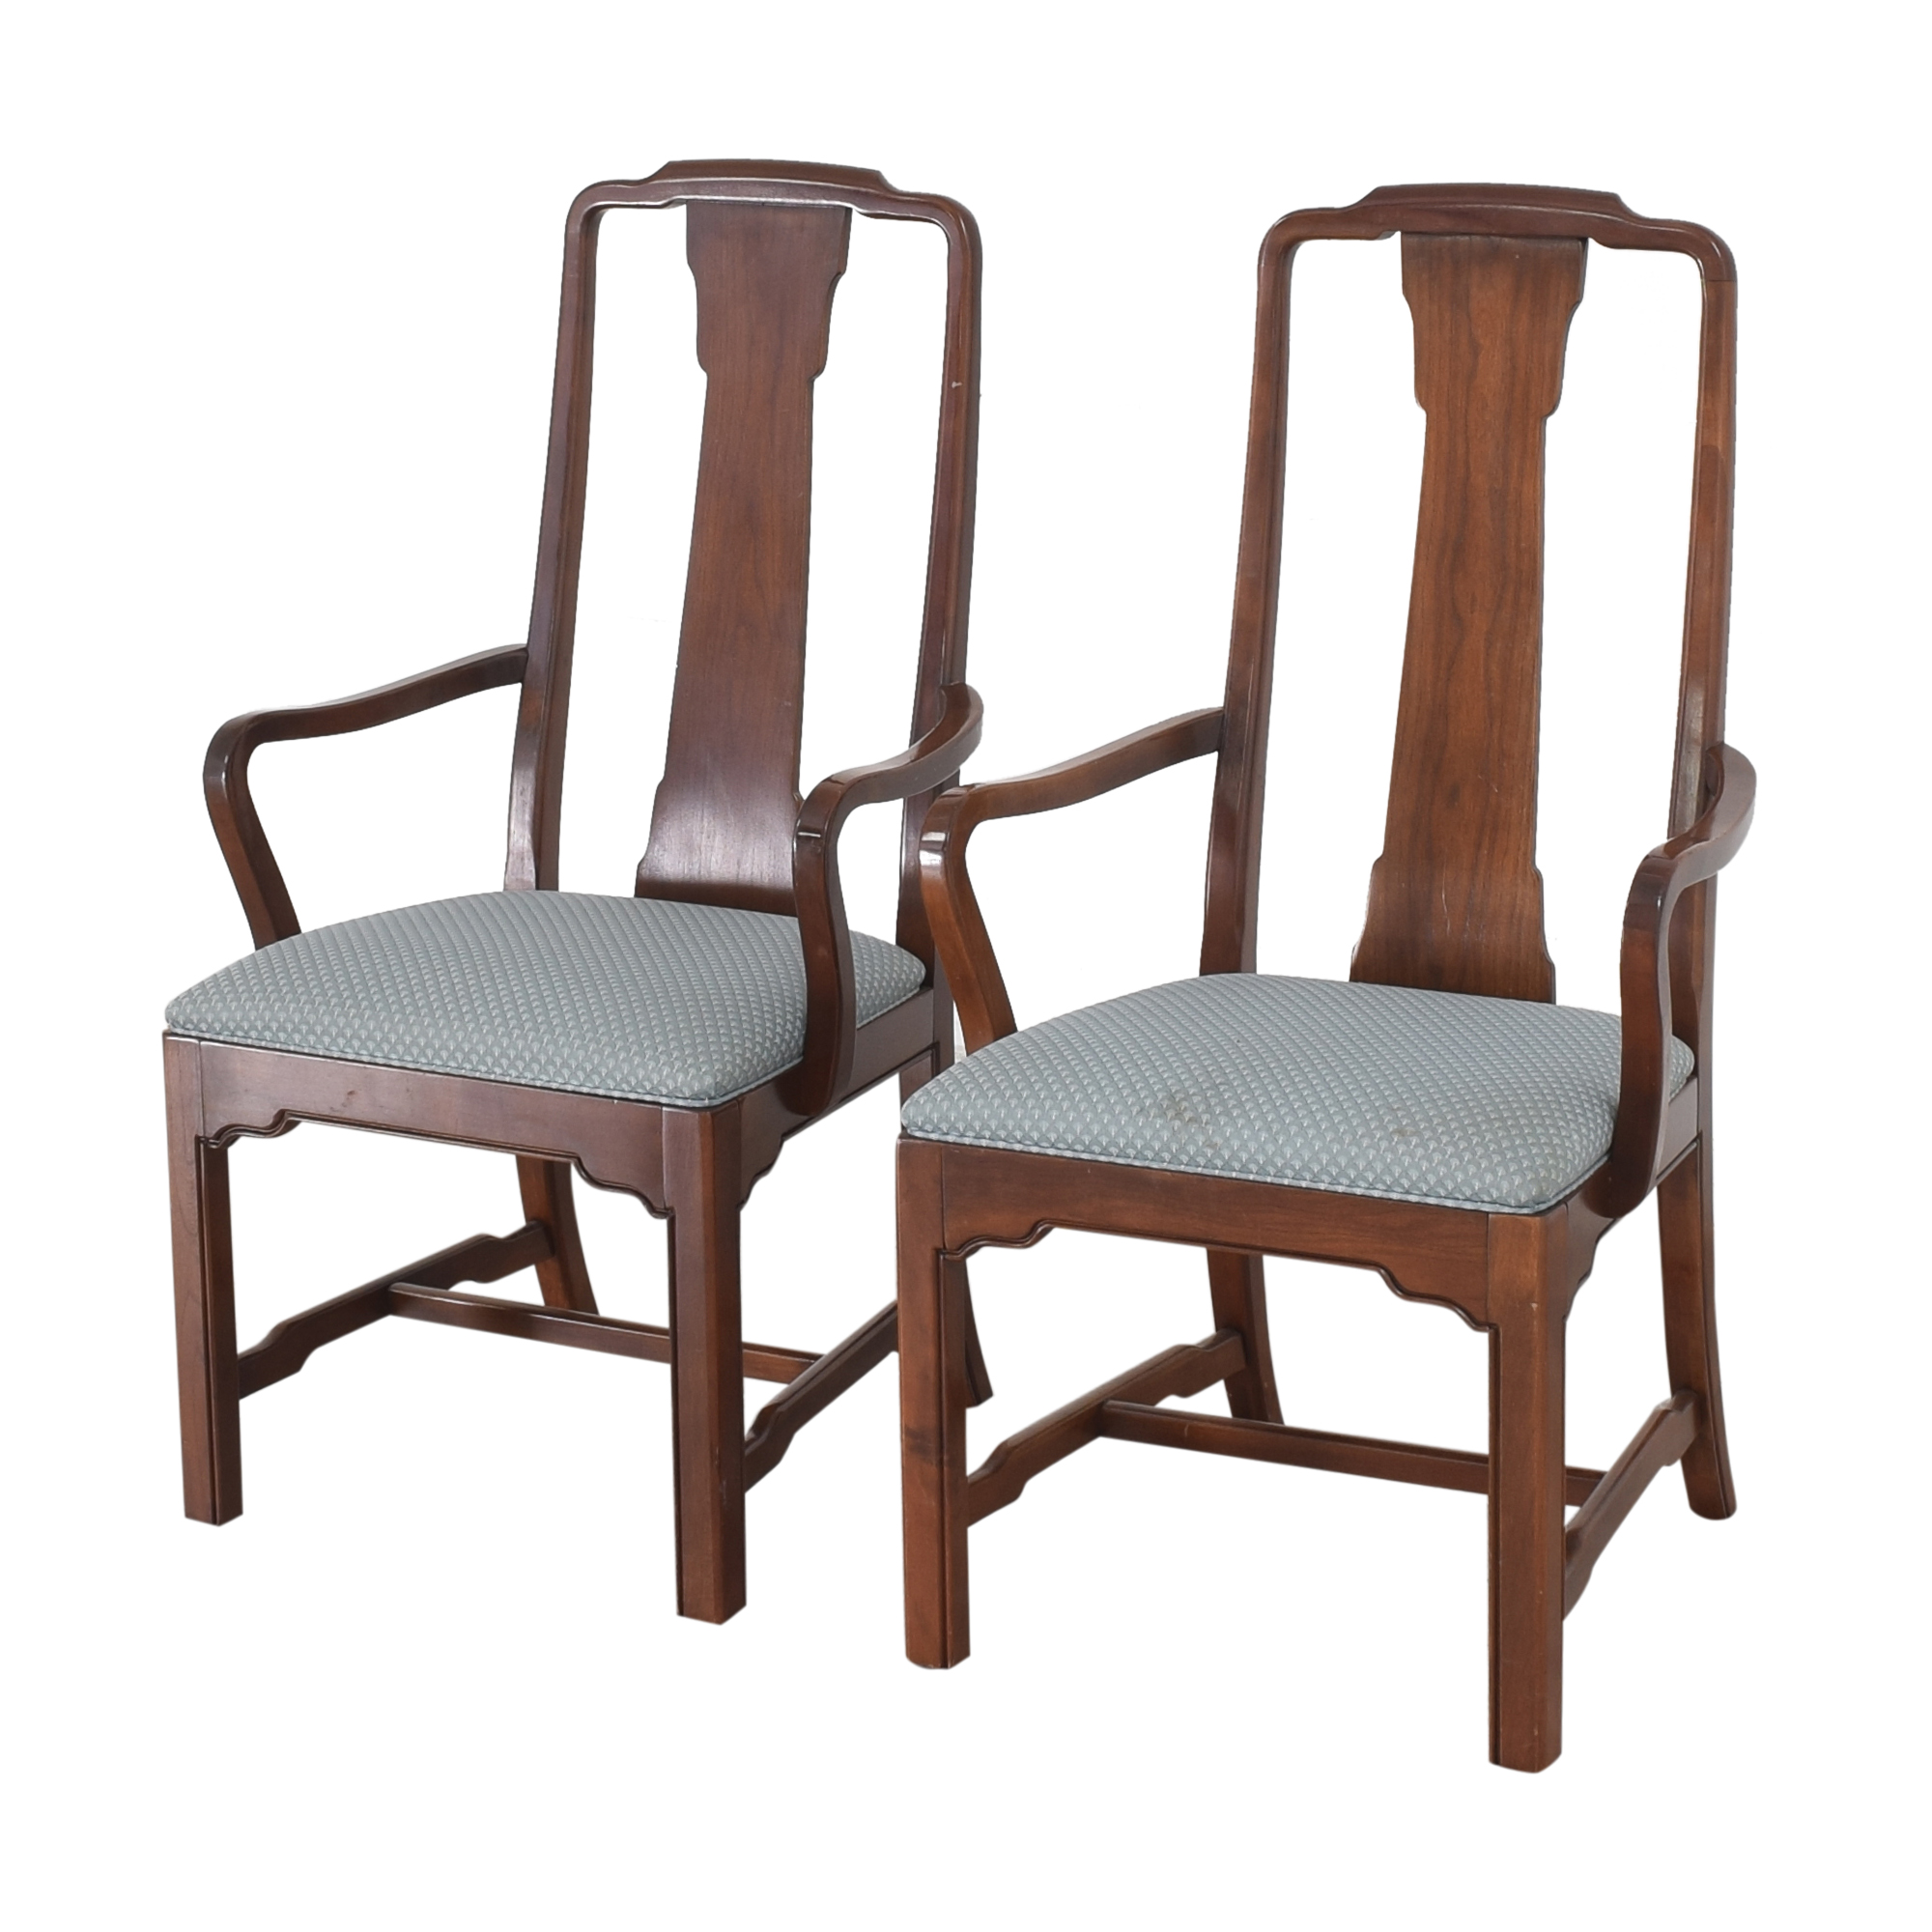 Ethan Allen Ethan Allen Canova Campaign Dining Arm Chairs coupon